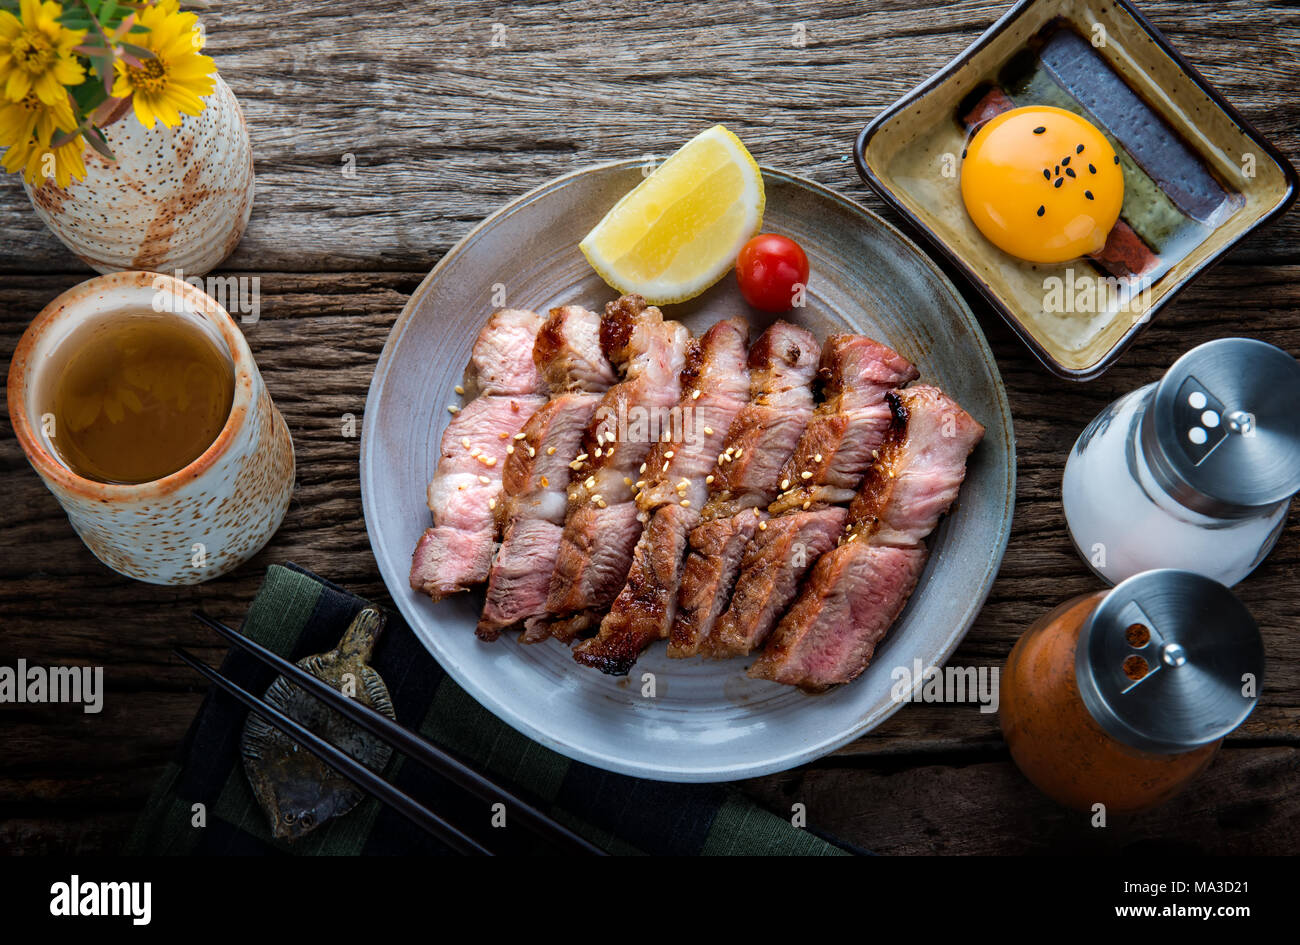 Pork grill or Buta Yaki in Japanese  Pork cooking style slice cut to serve. - Stock Image